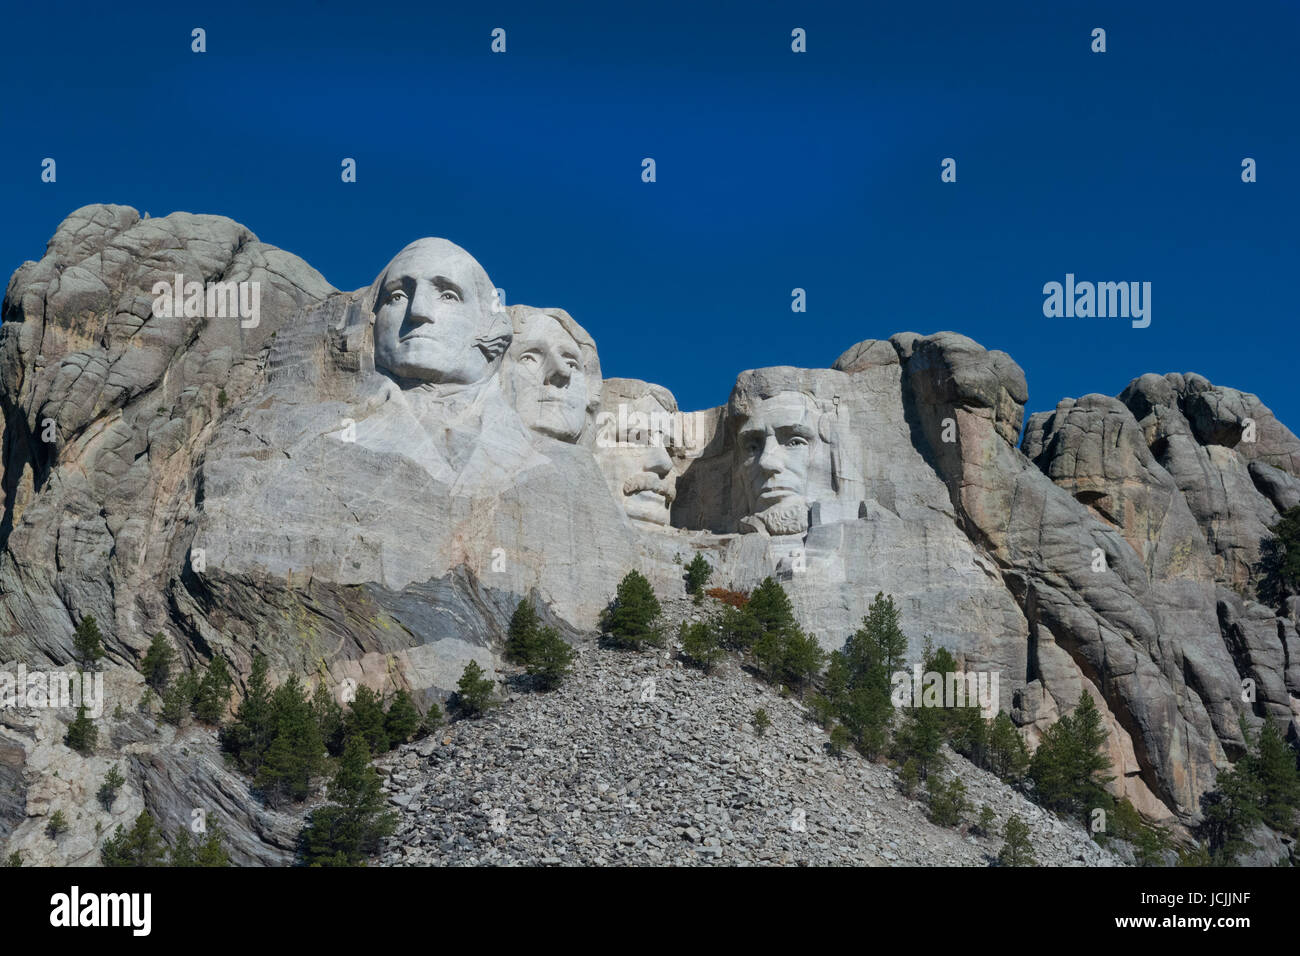 Mount Rushmore set against a bright cloud free blue sky. Stock Photo